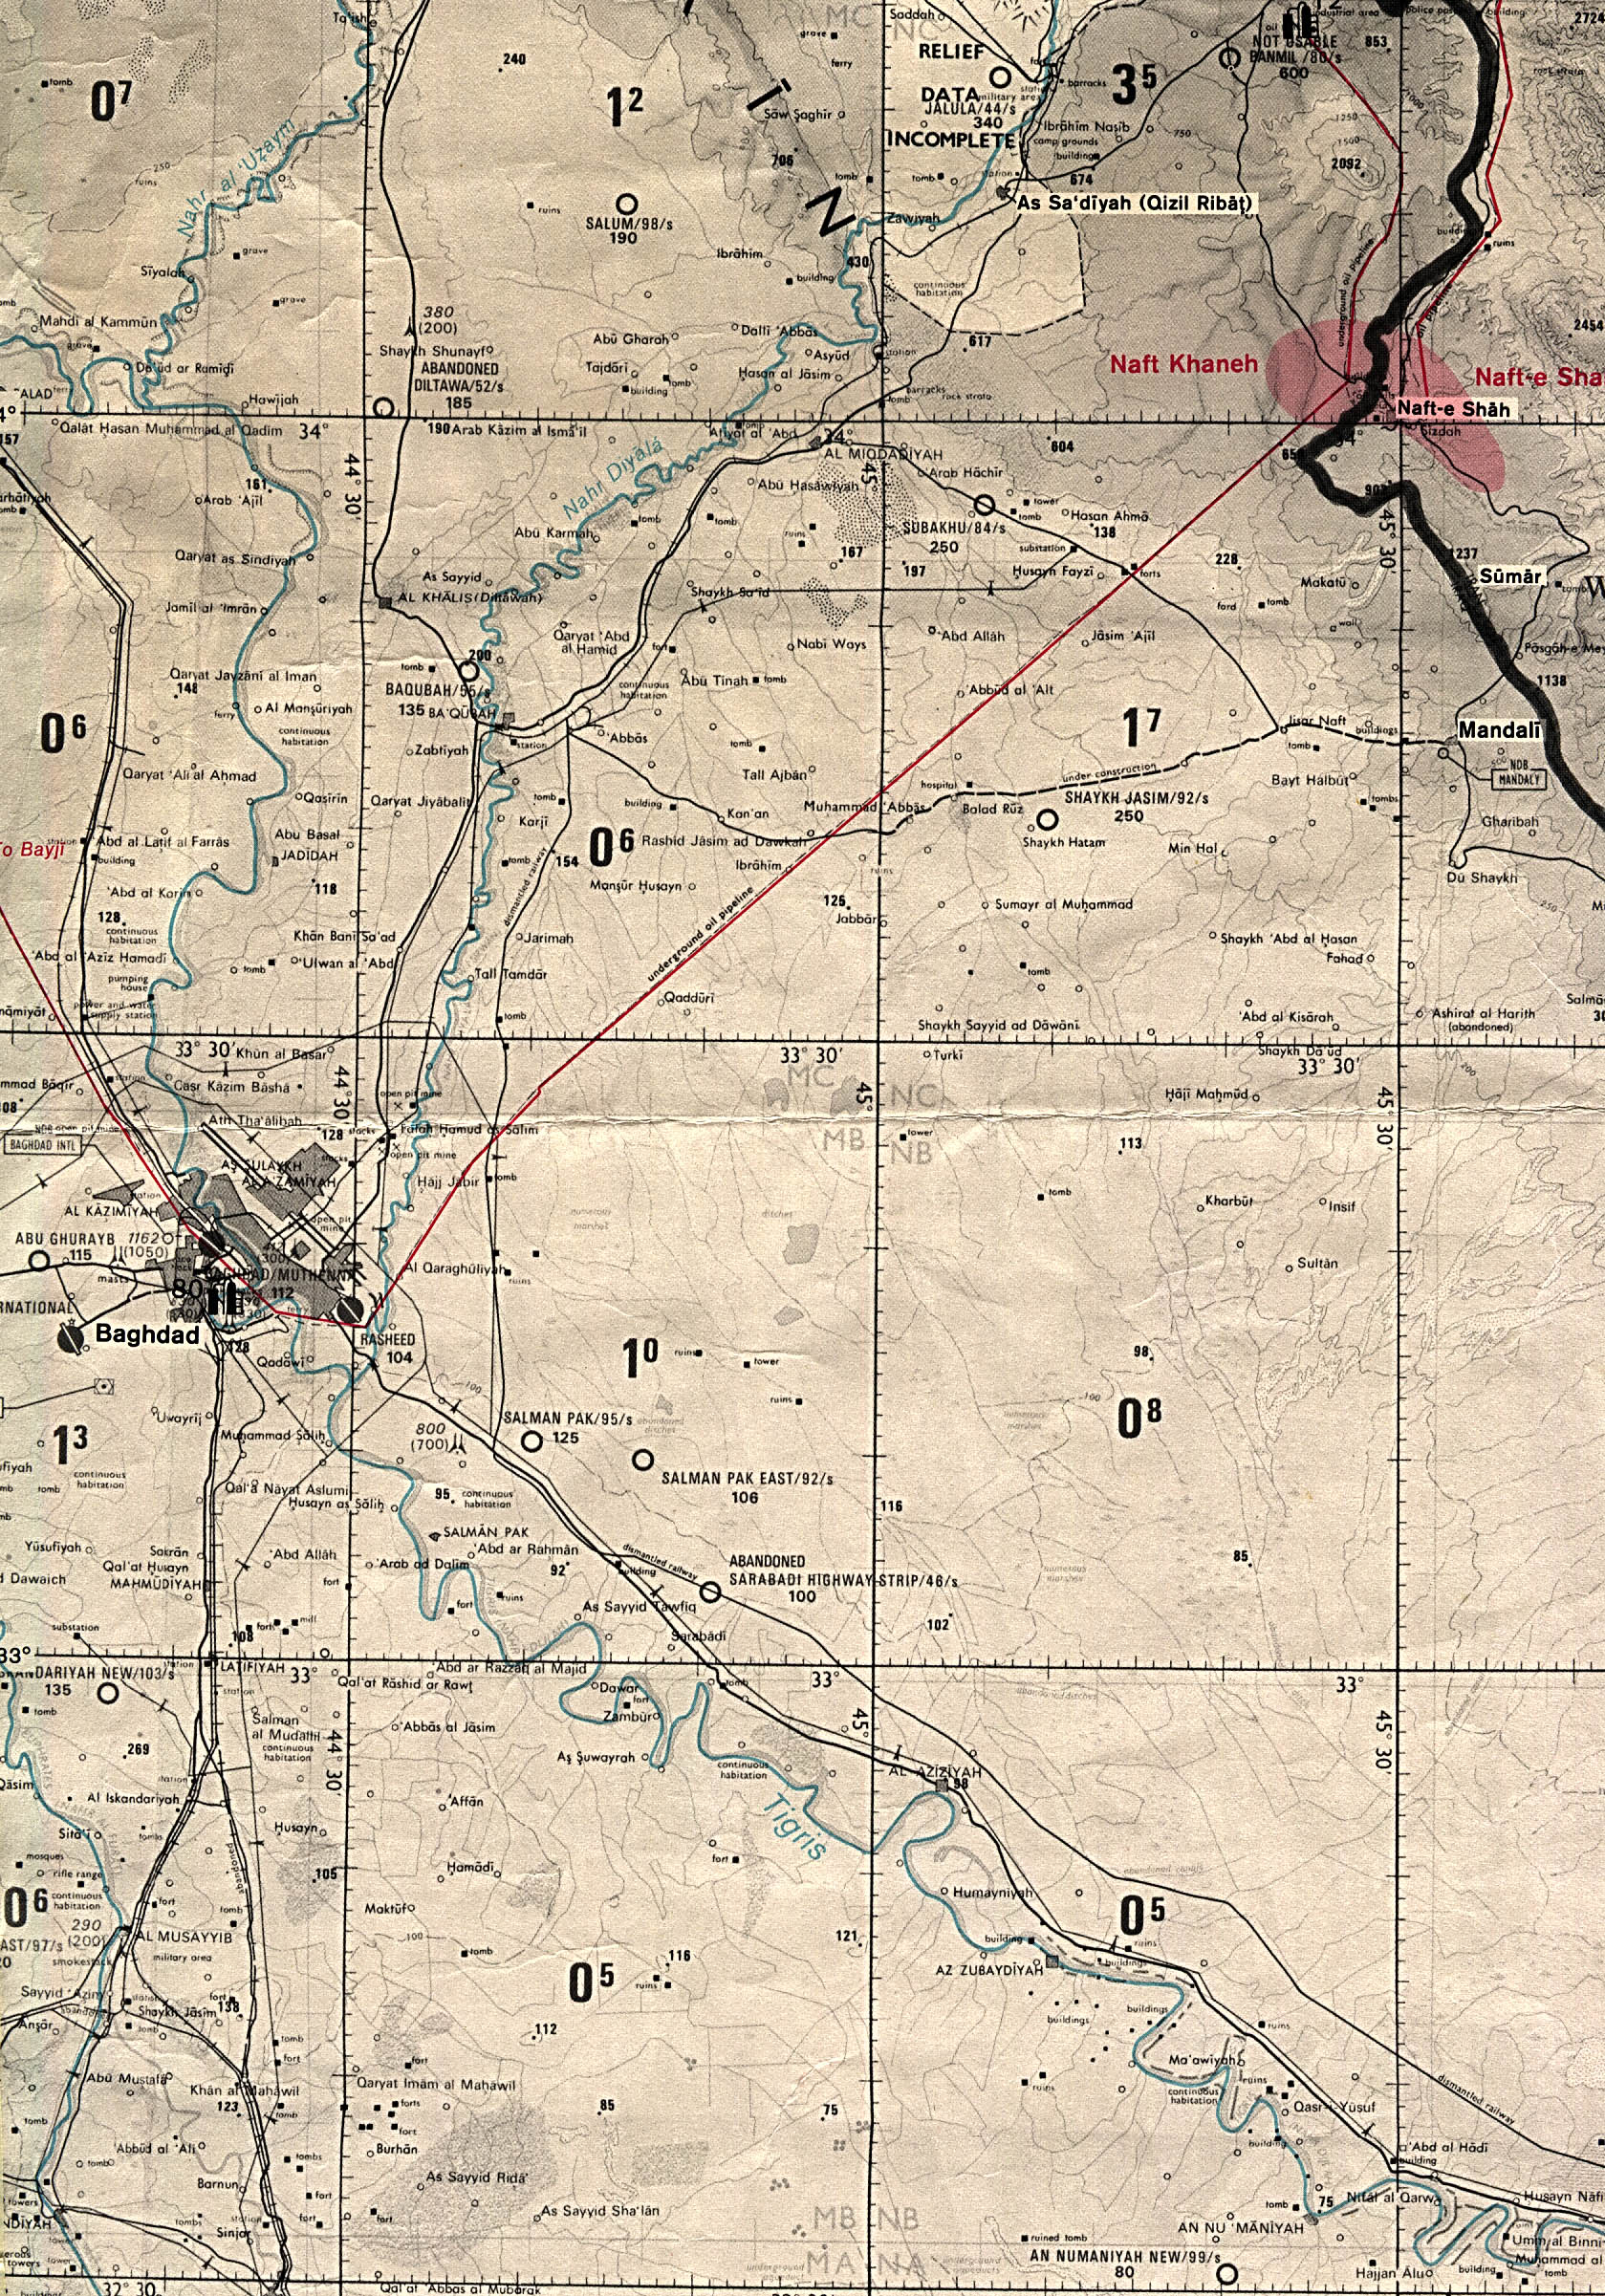 Map Of Iraq Baghdad Region original scale 1:670,000 From Iraq-Iran: Central and Southern Border Areas CIA 1980 (1136K)